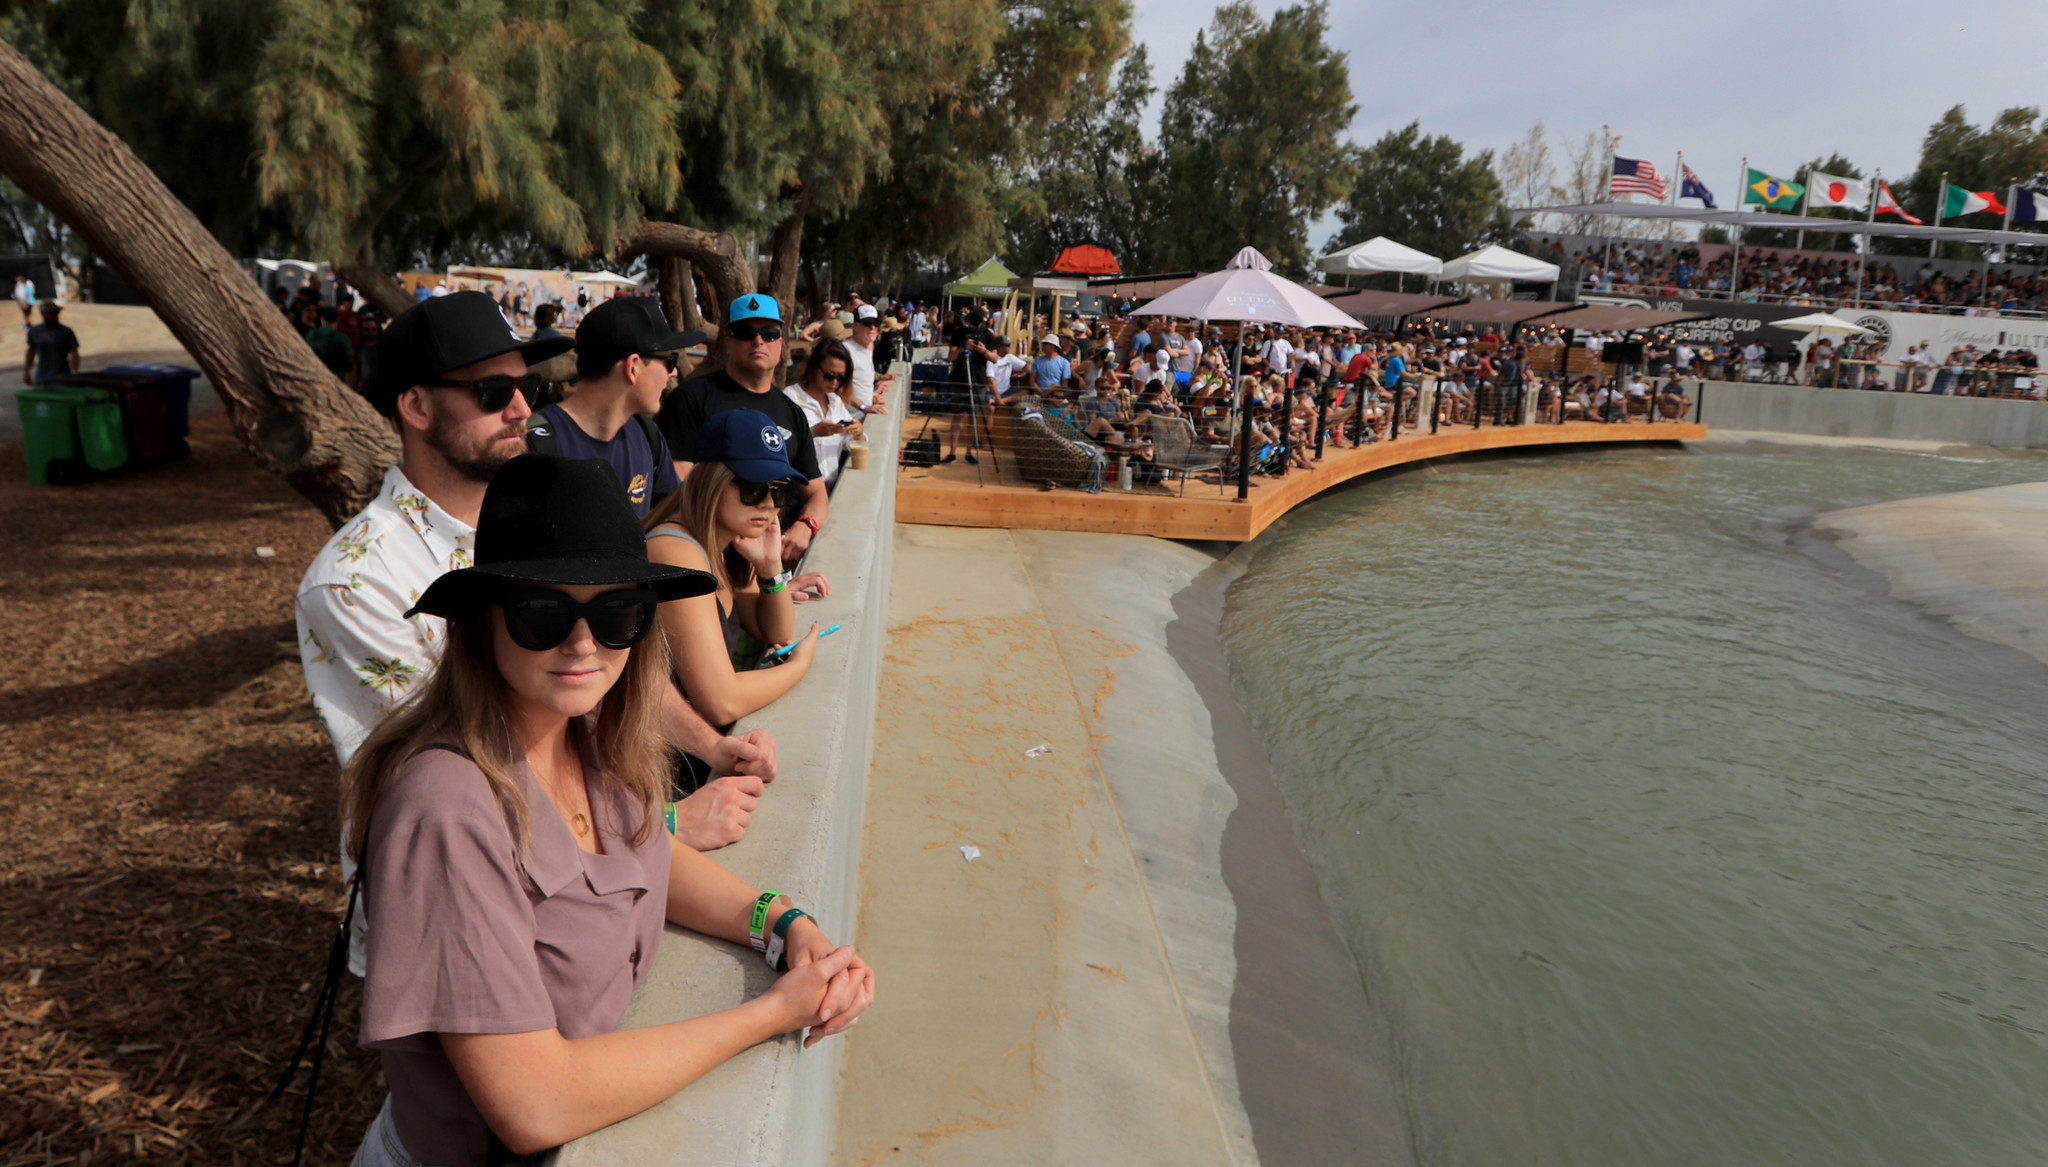 LEMOORE, CALIF. -- SATURDAY, MAY 5, 2018: Fans line the Surf Ranch pool to watch pro surfing come to